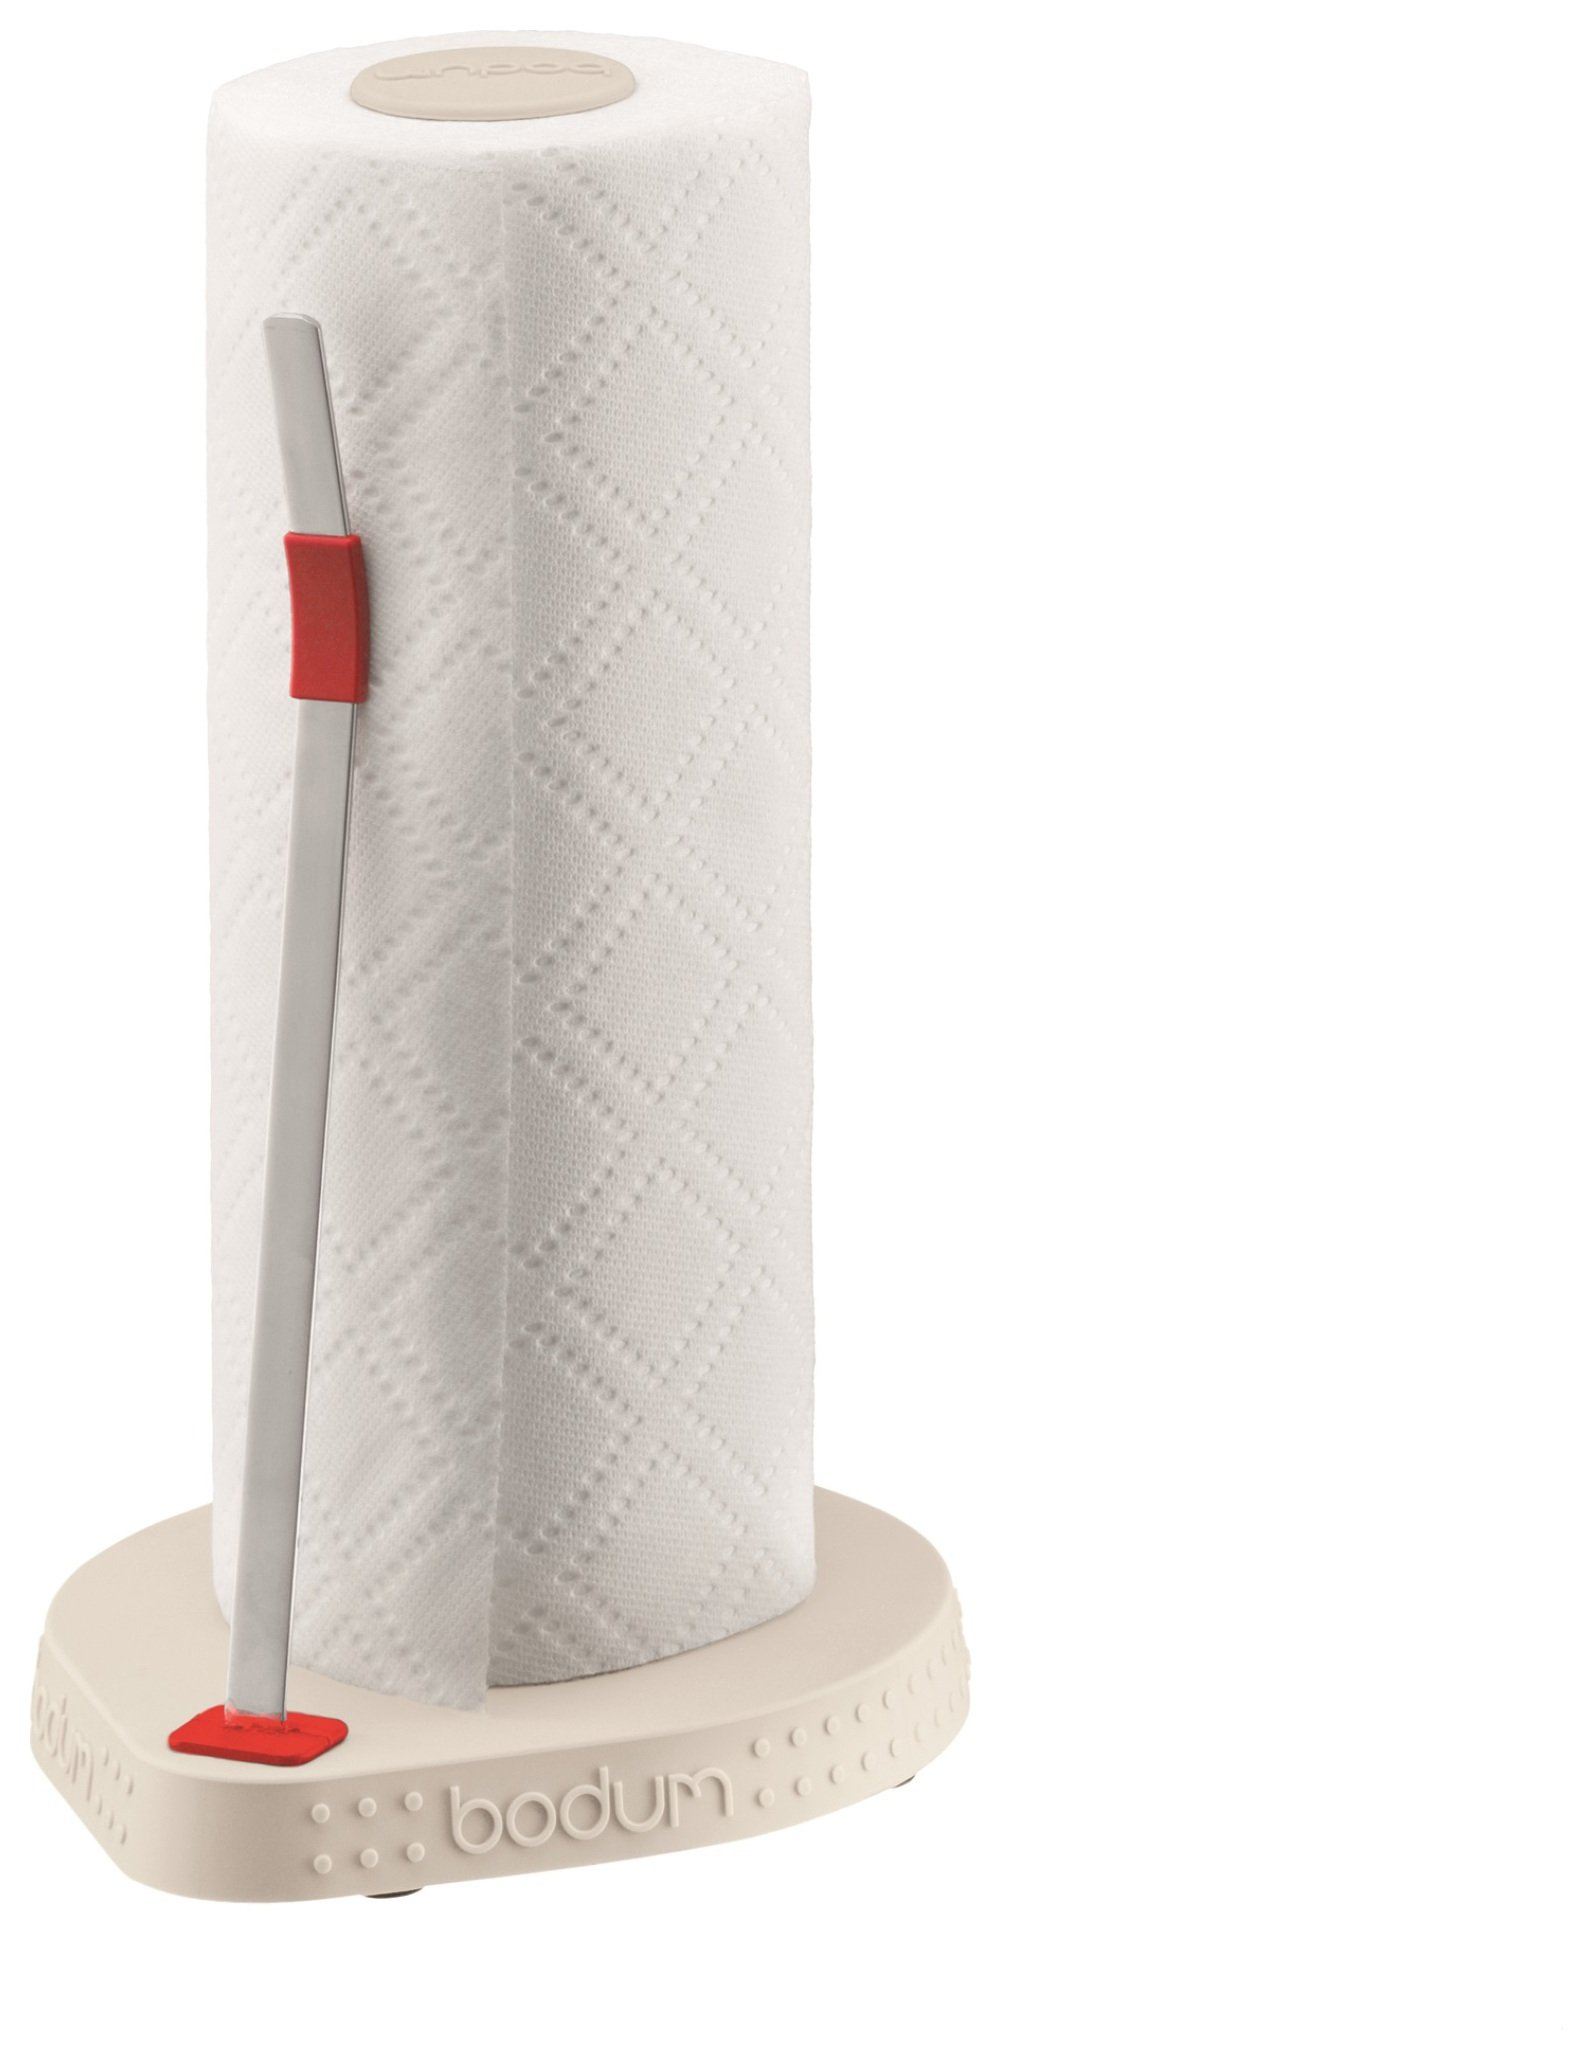 Image of Bodum Bistro Paper Roll Holder - White